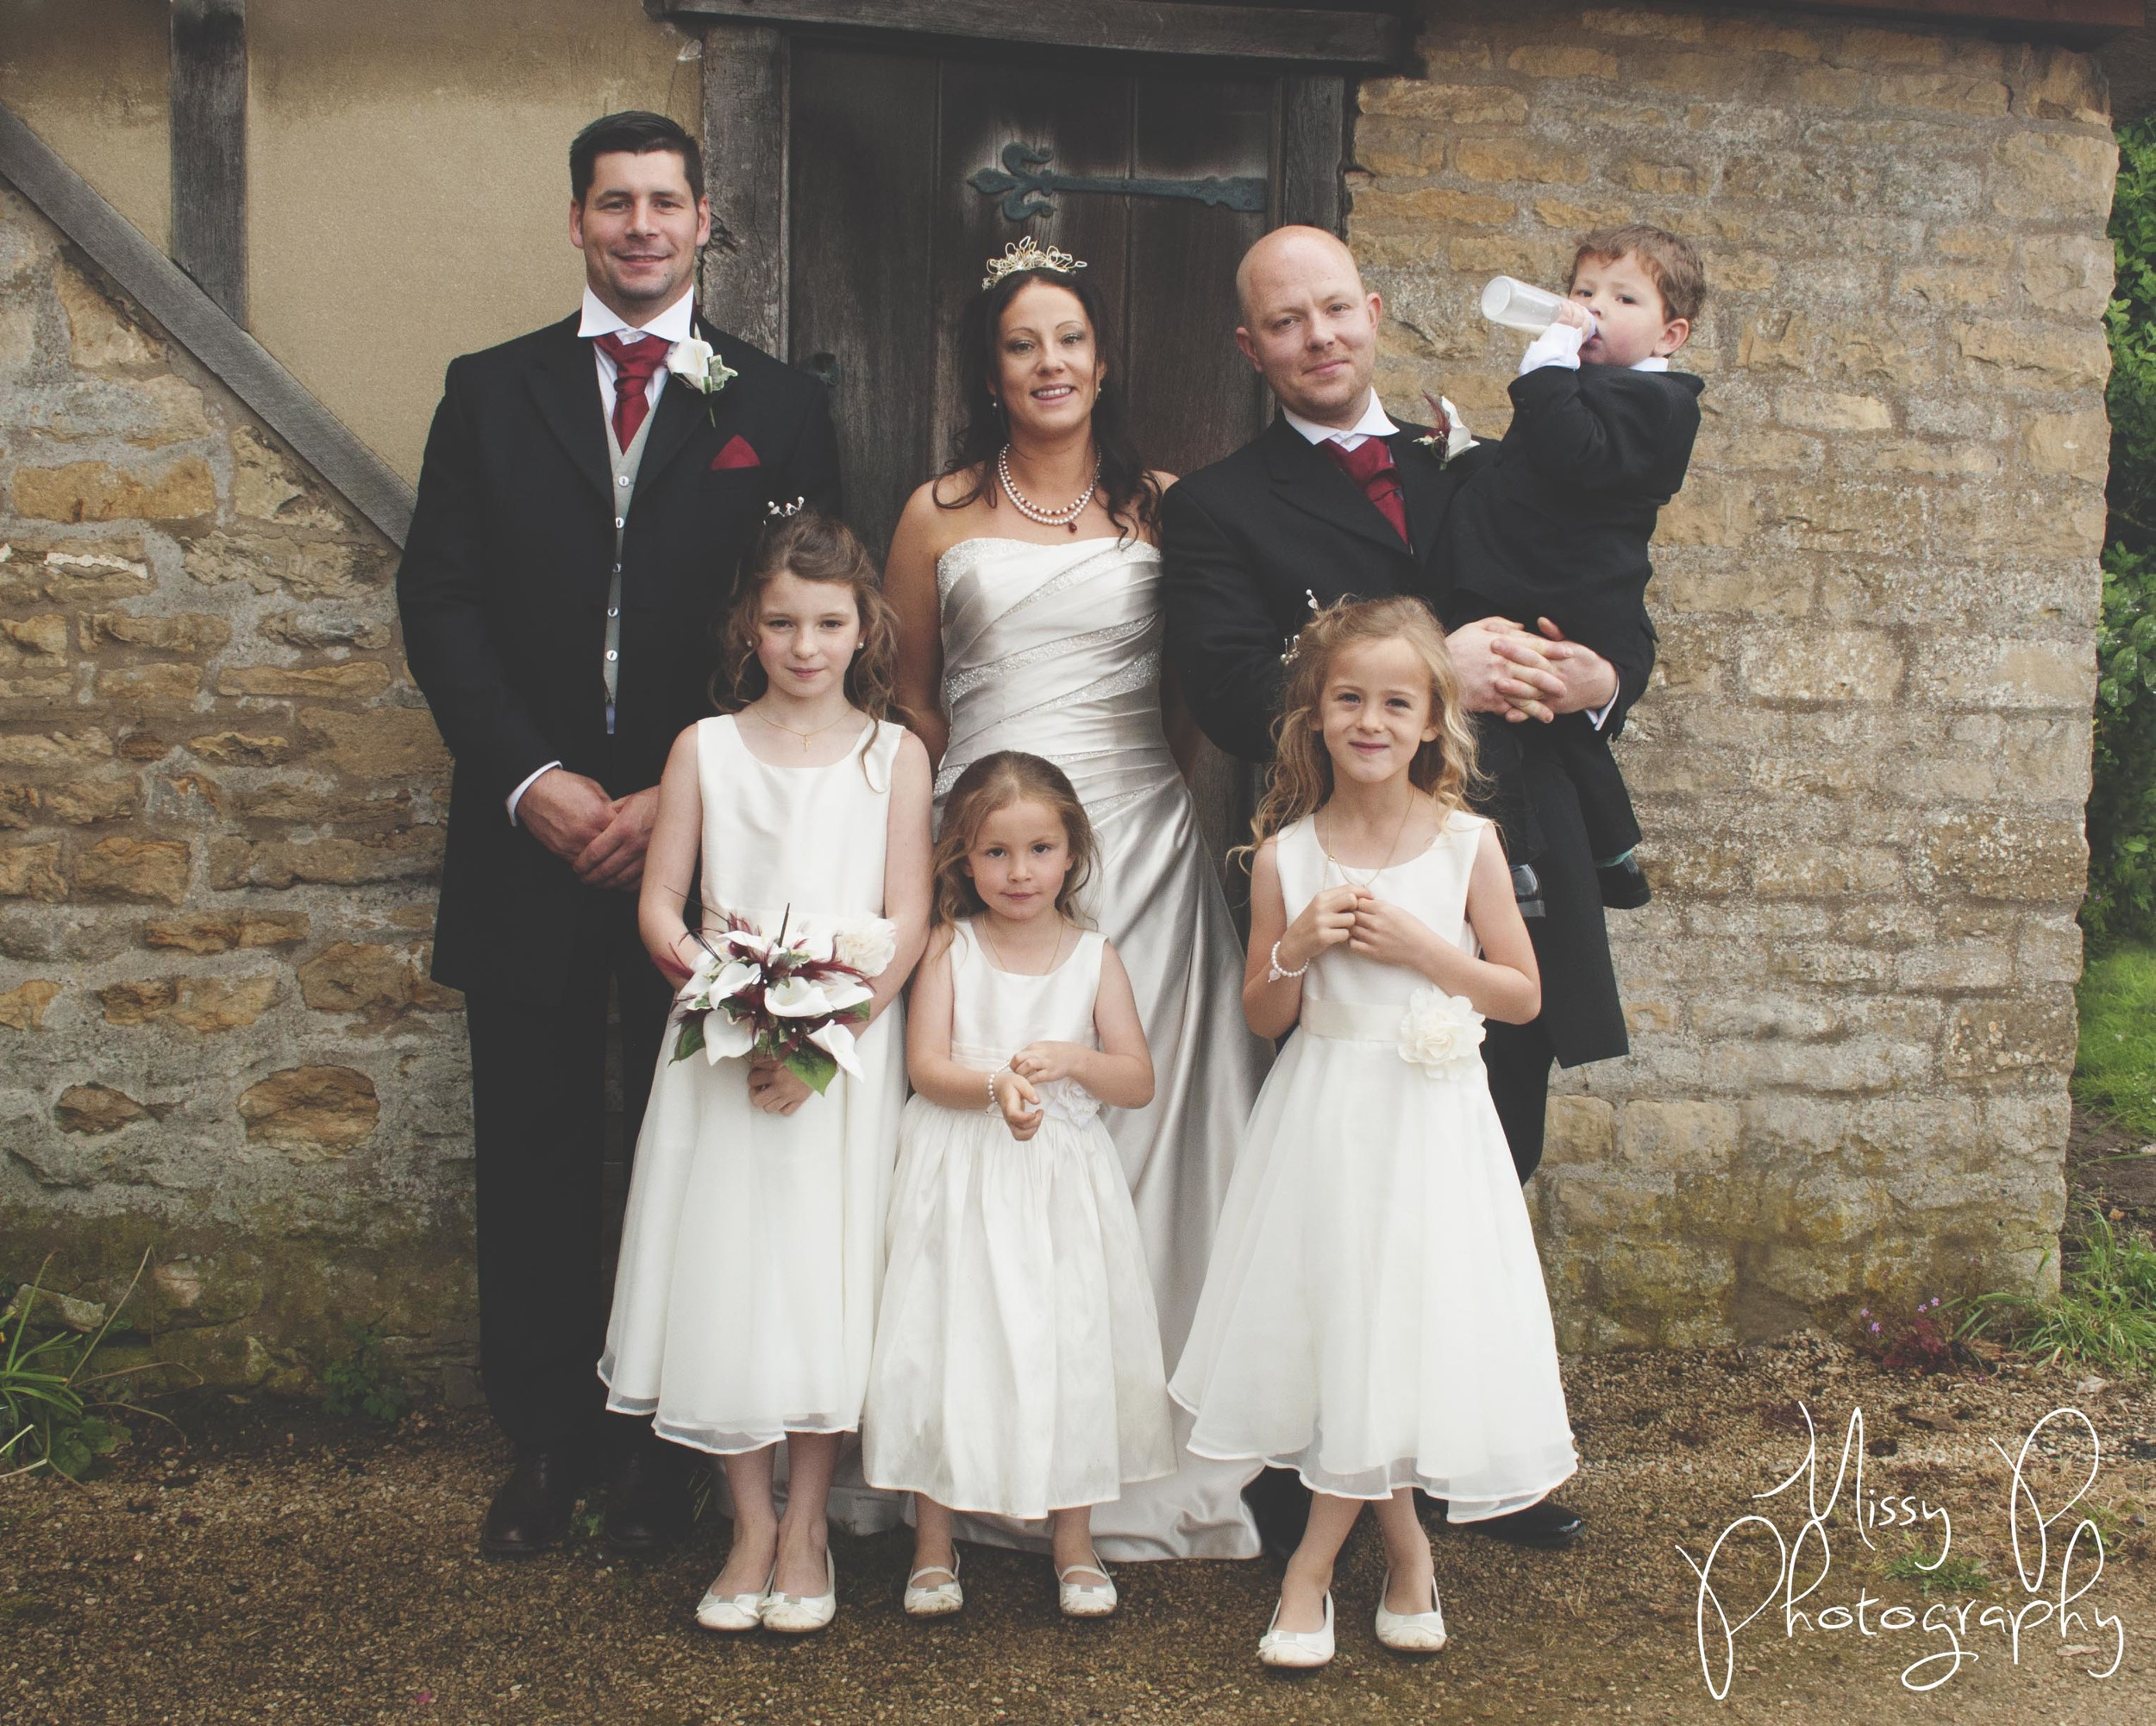 Gary, Kim, Best Man - James & Kim & Gary's Beautiful children, Millie, Skye, Sophie - Jo & Harry